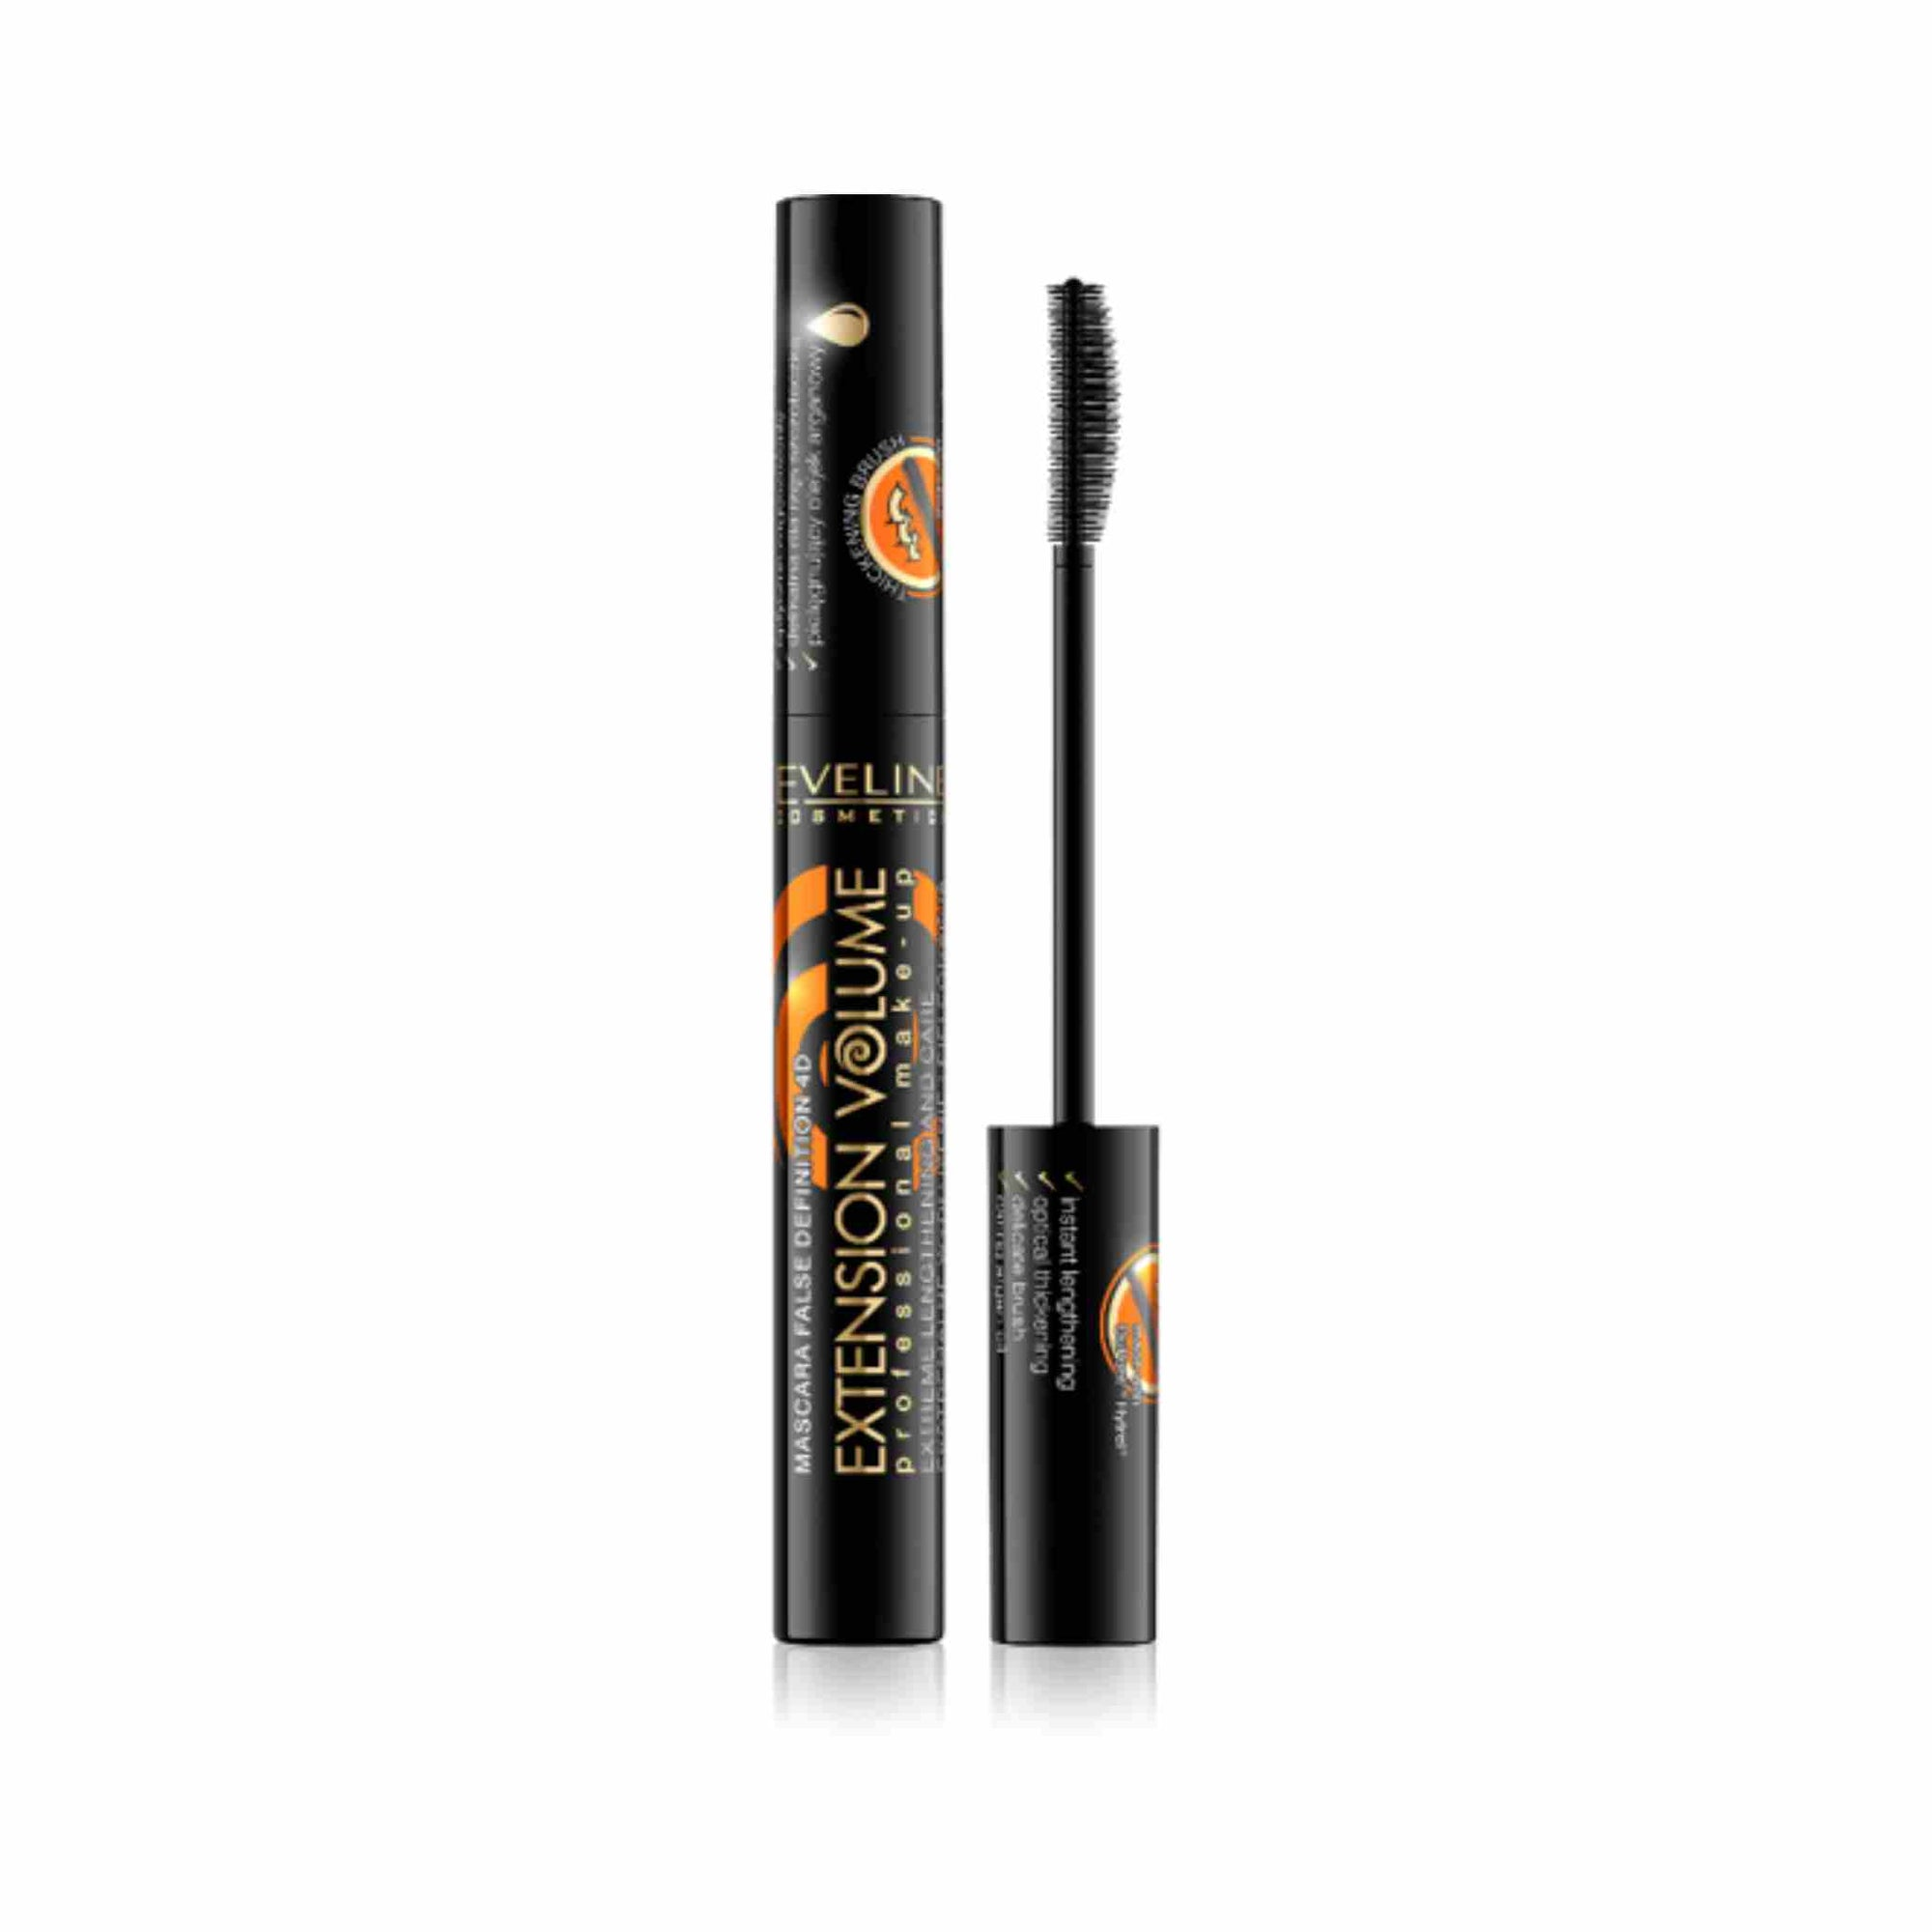 Extension Volume 4D Extreme Lengthening and Care Mascara